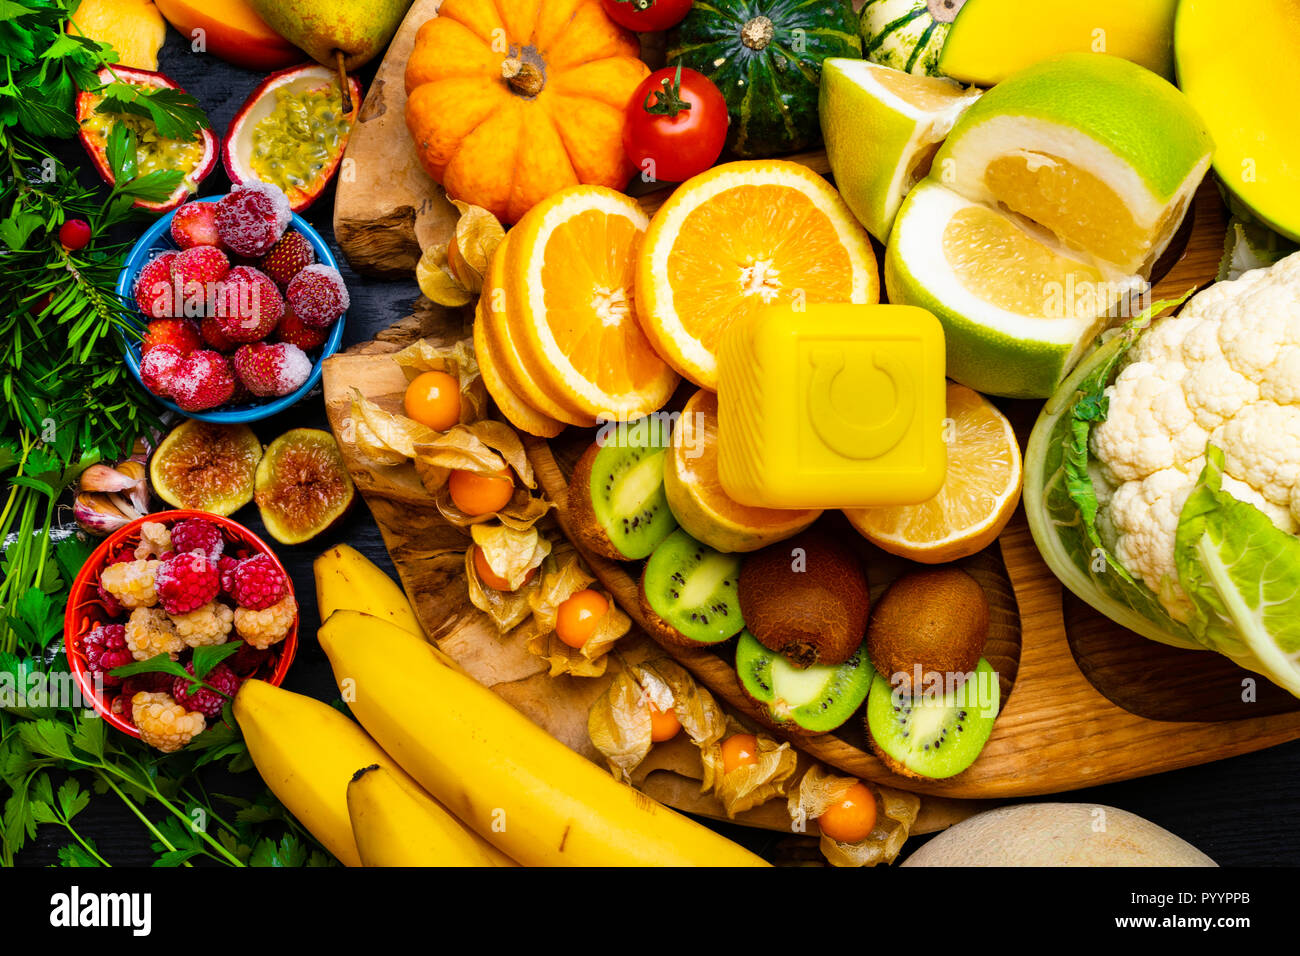 Foods High in vitamin C on a wooden board. Healthy eating. Dieting - Stock Image